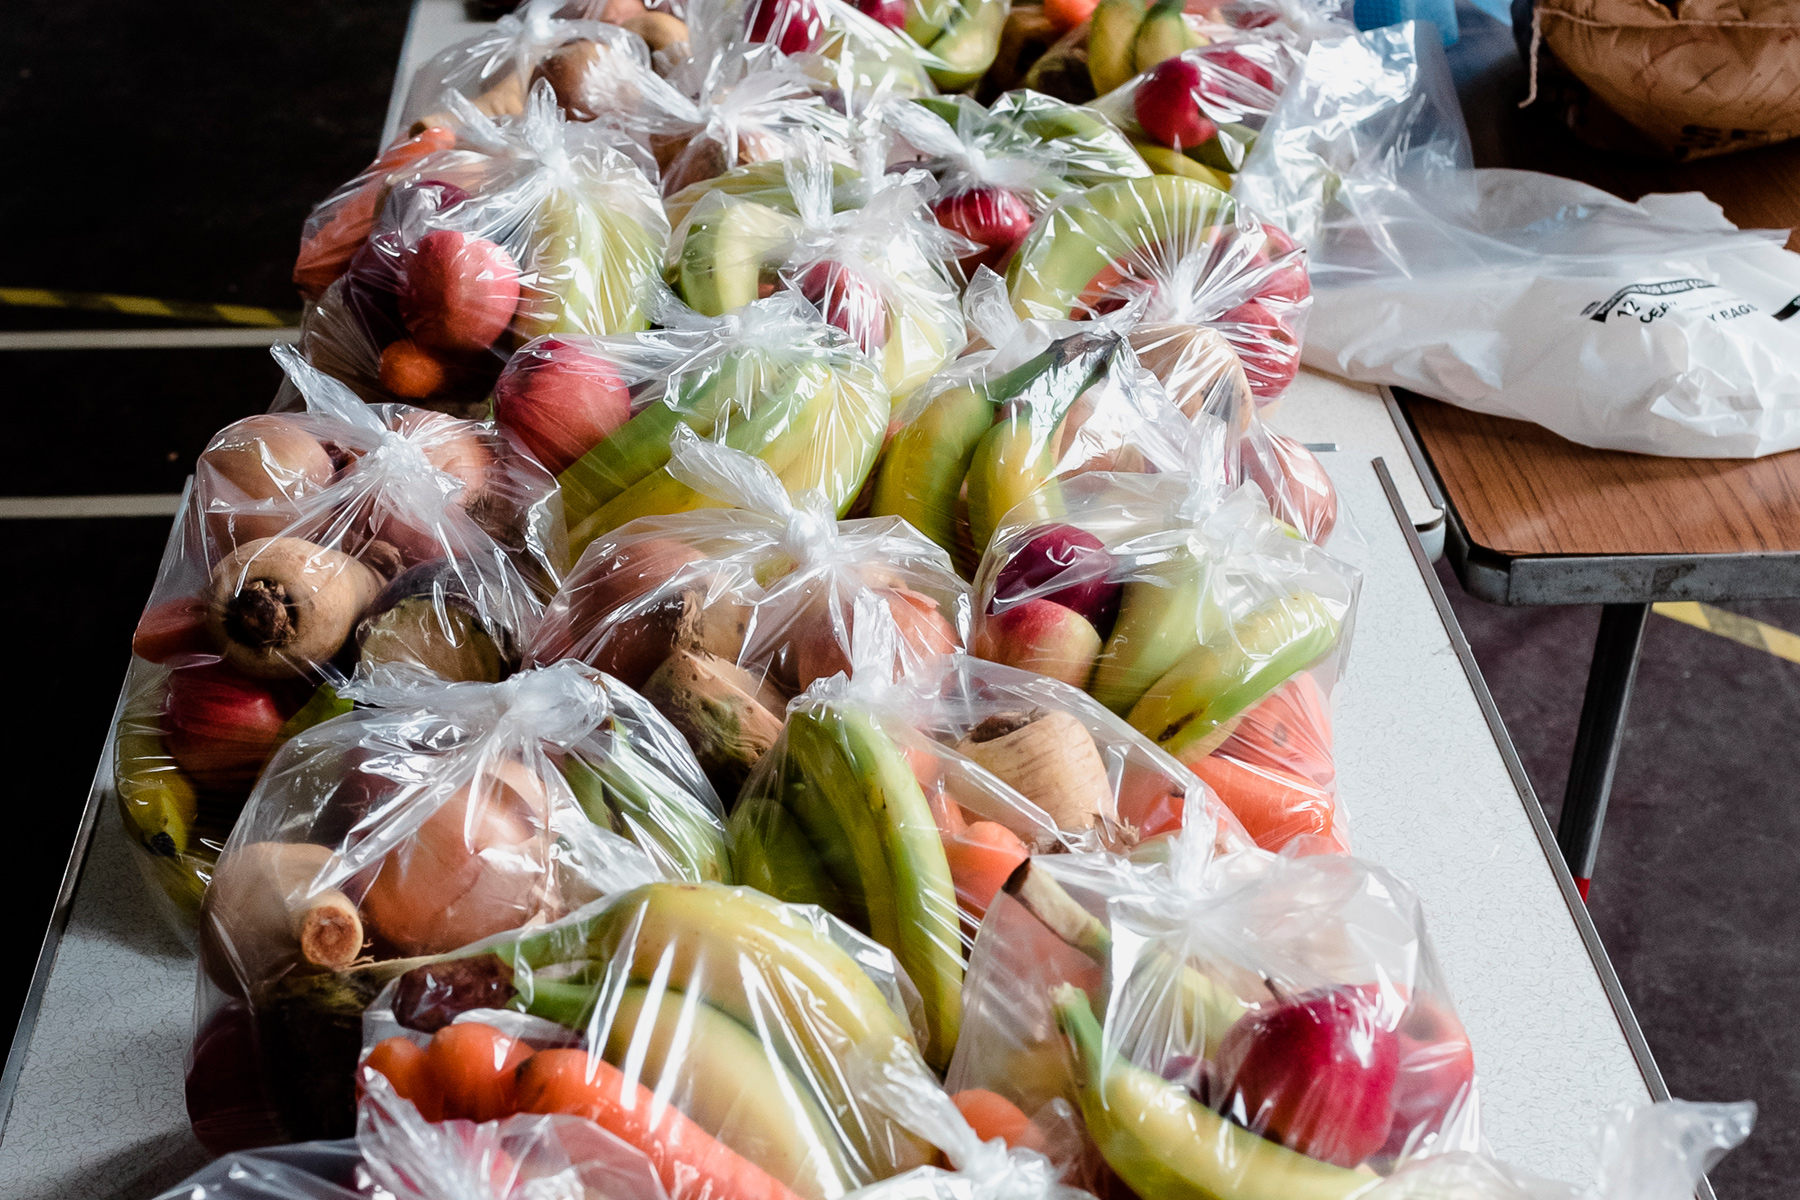 Healthy food parcels in bags